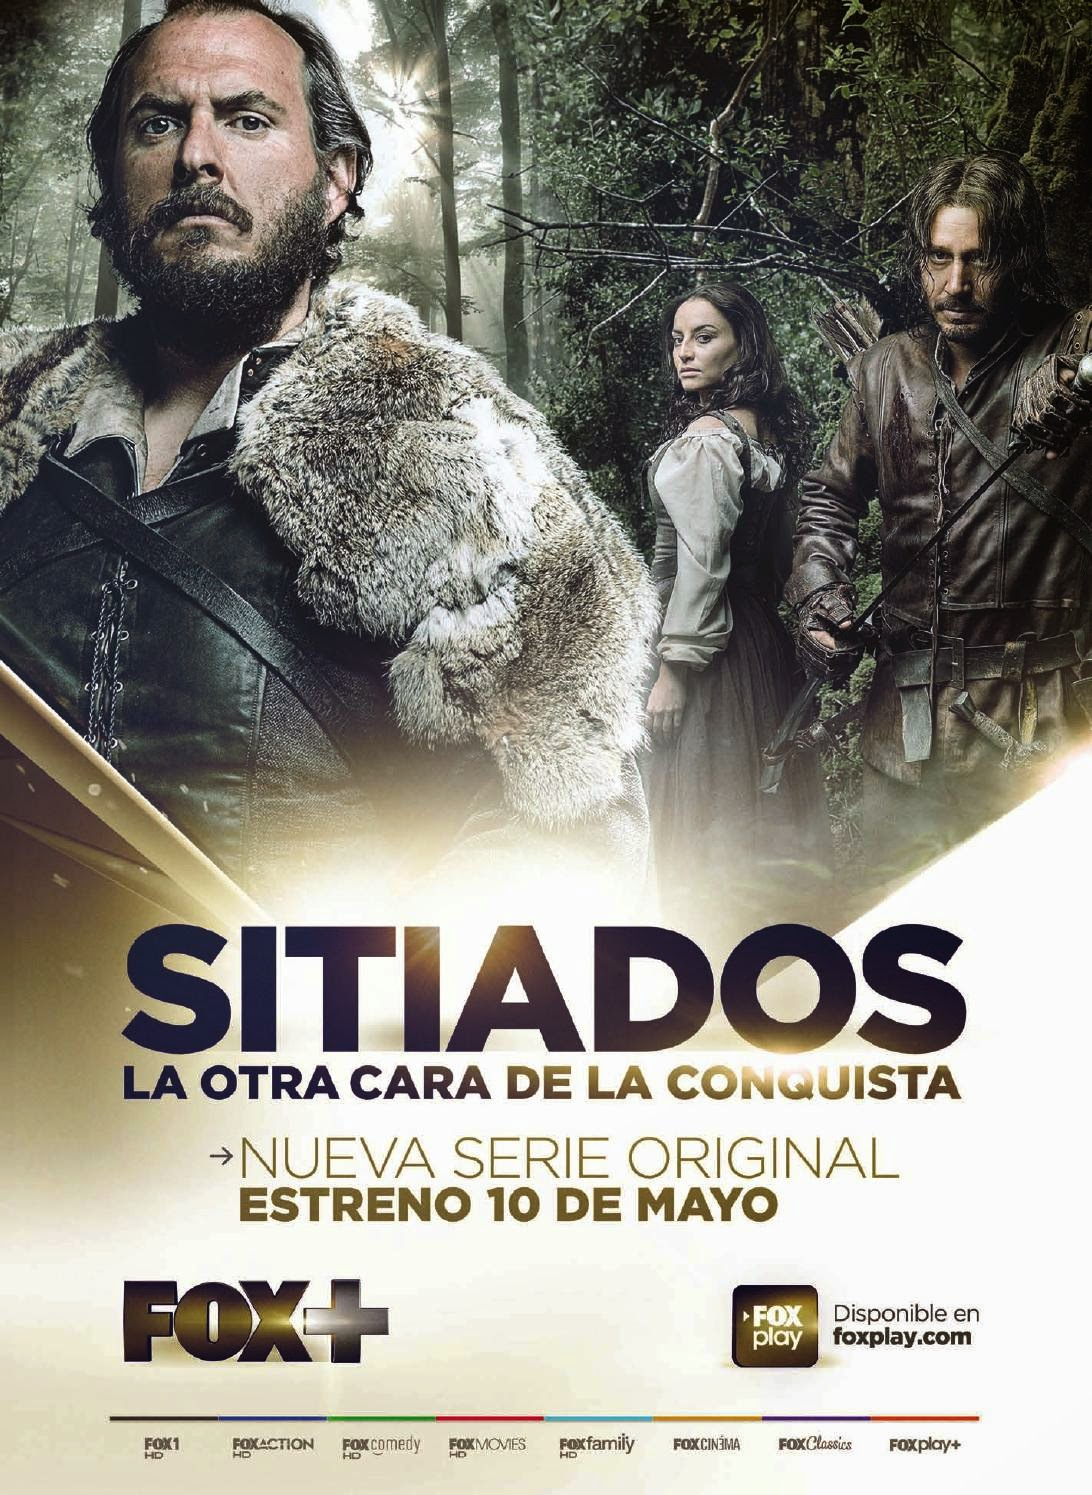 http://www.mastelenovelas.com/search/label/Sitiados